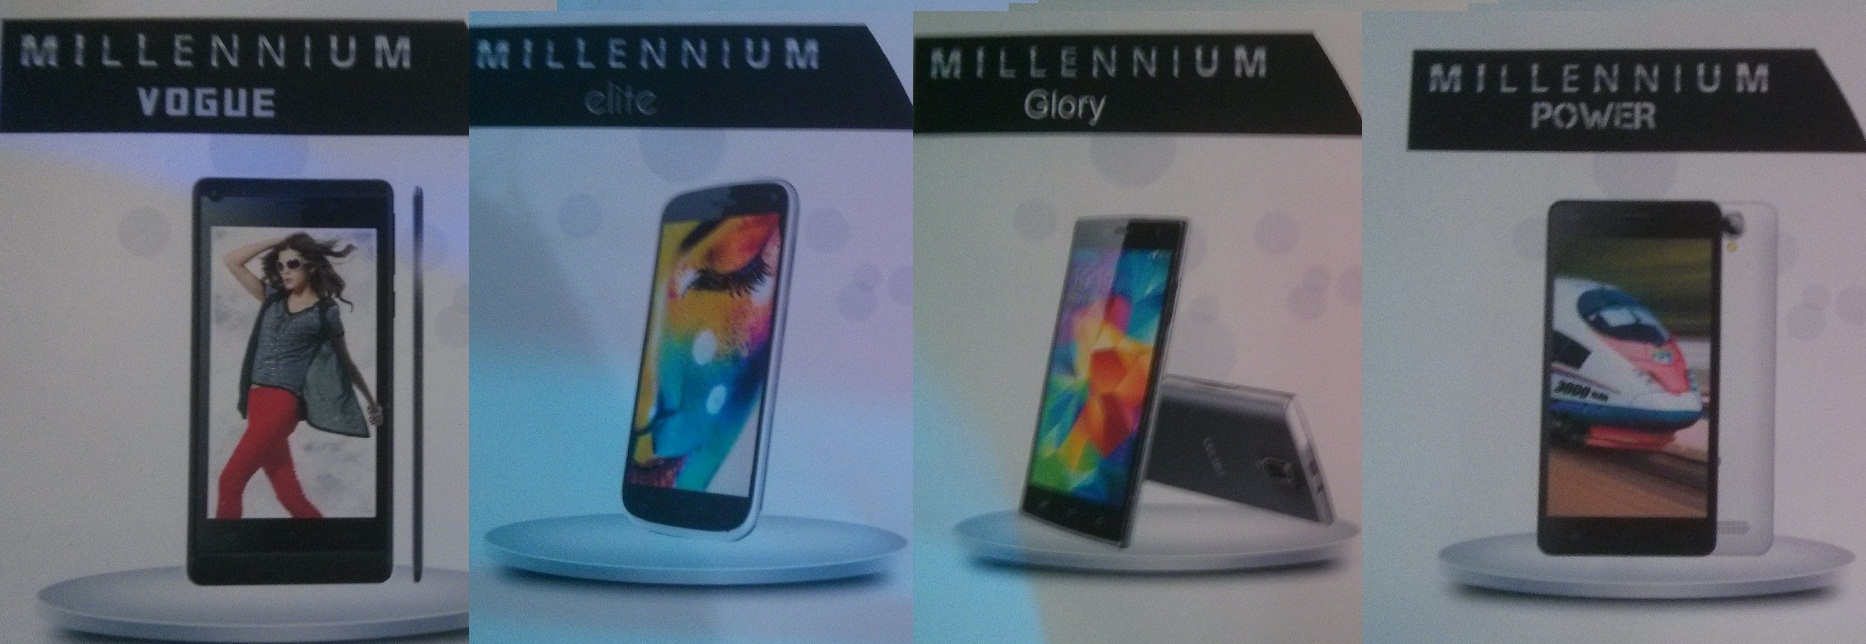 Celkon Millennium Phones